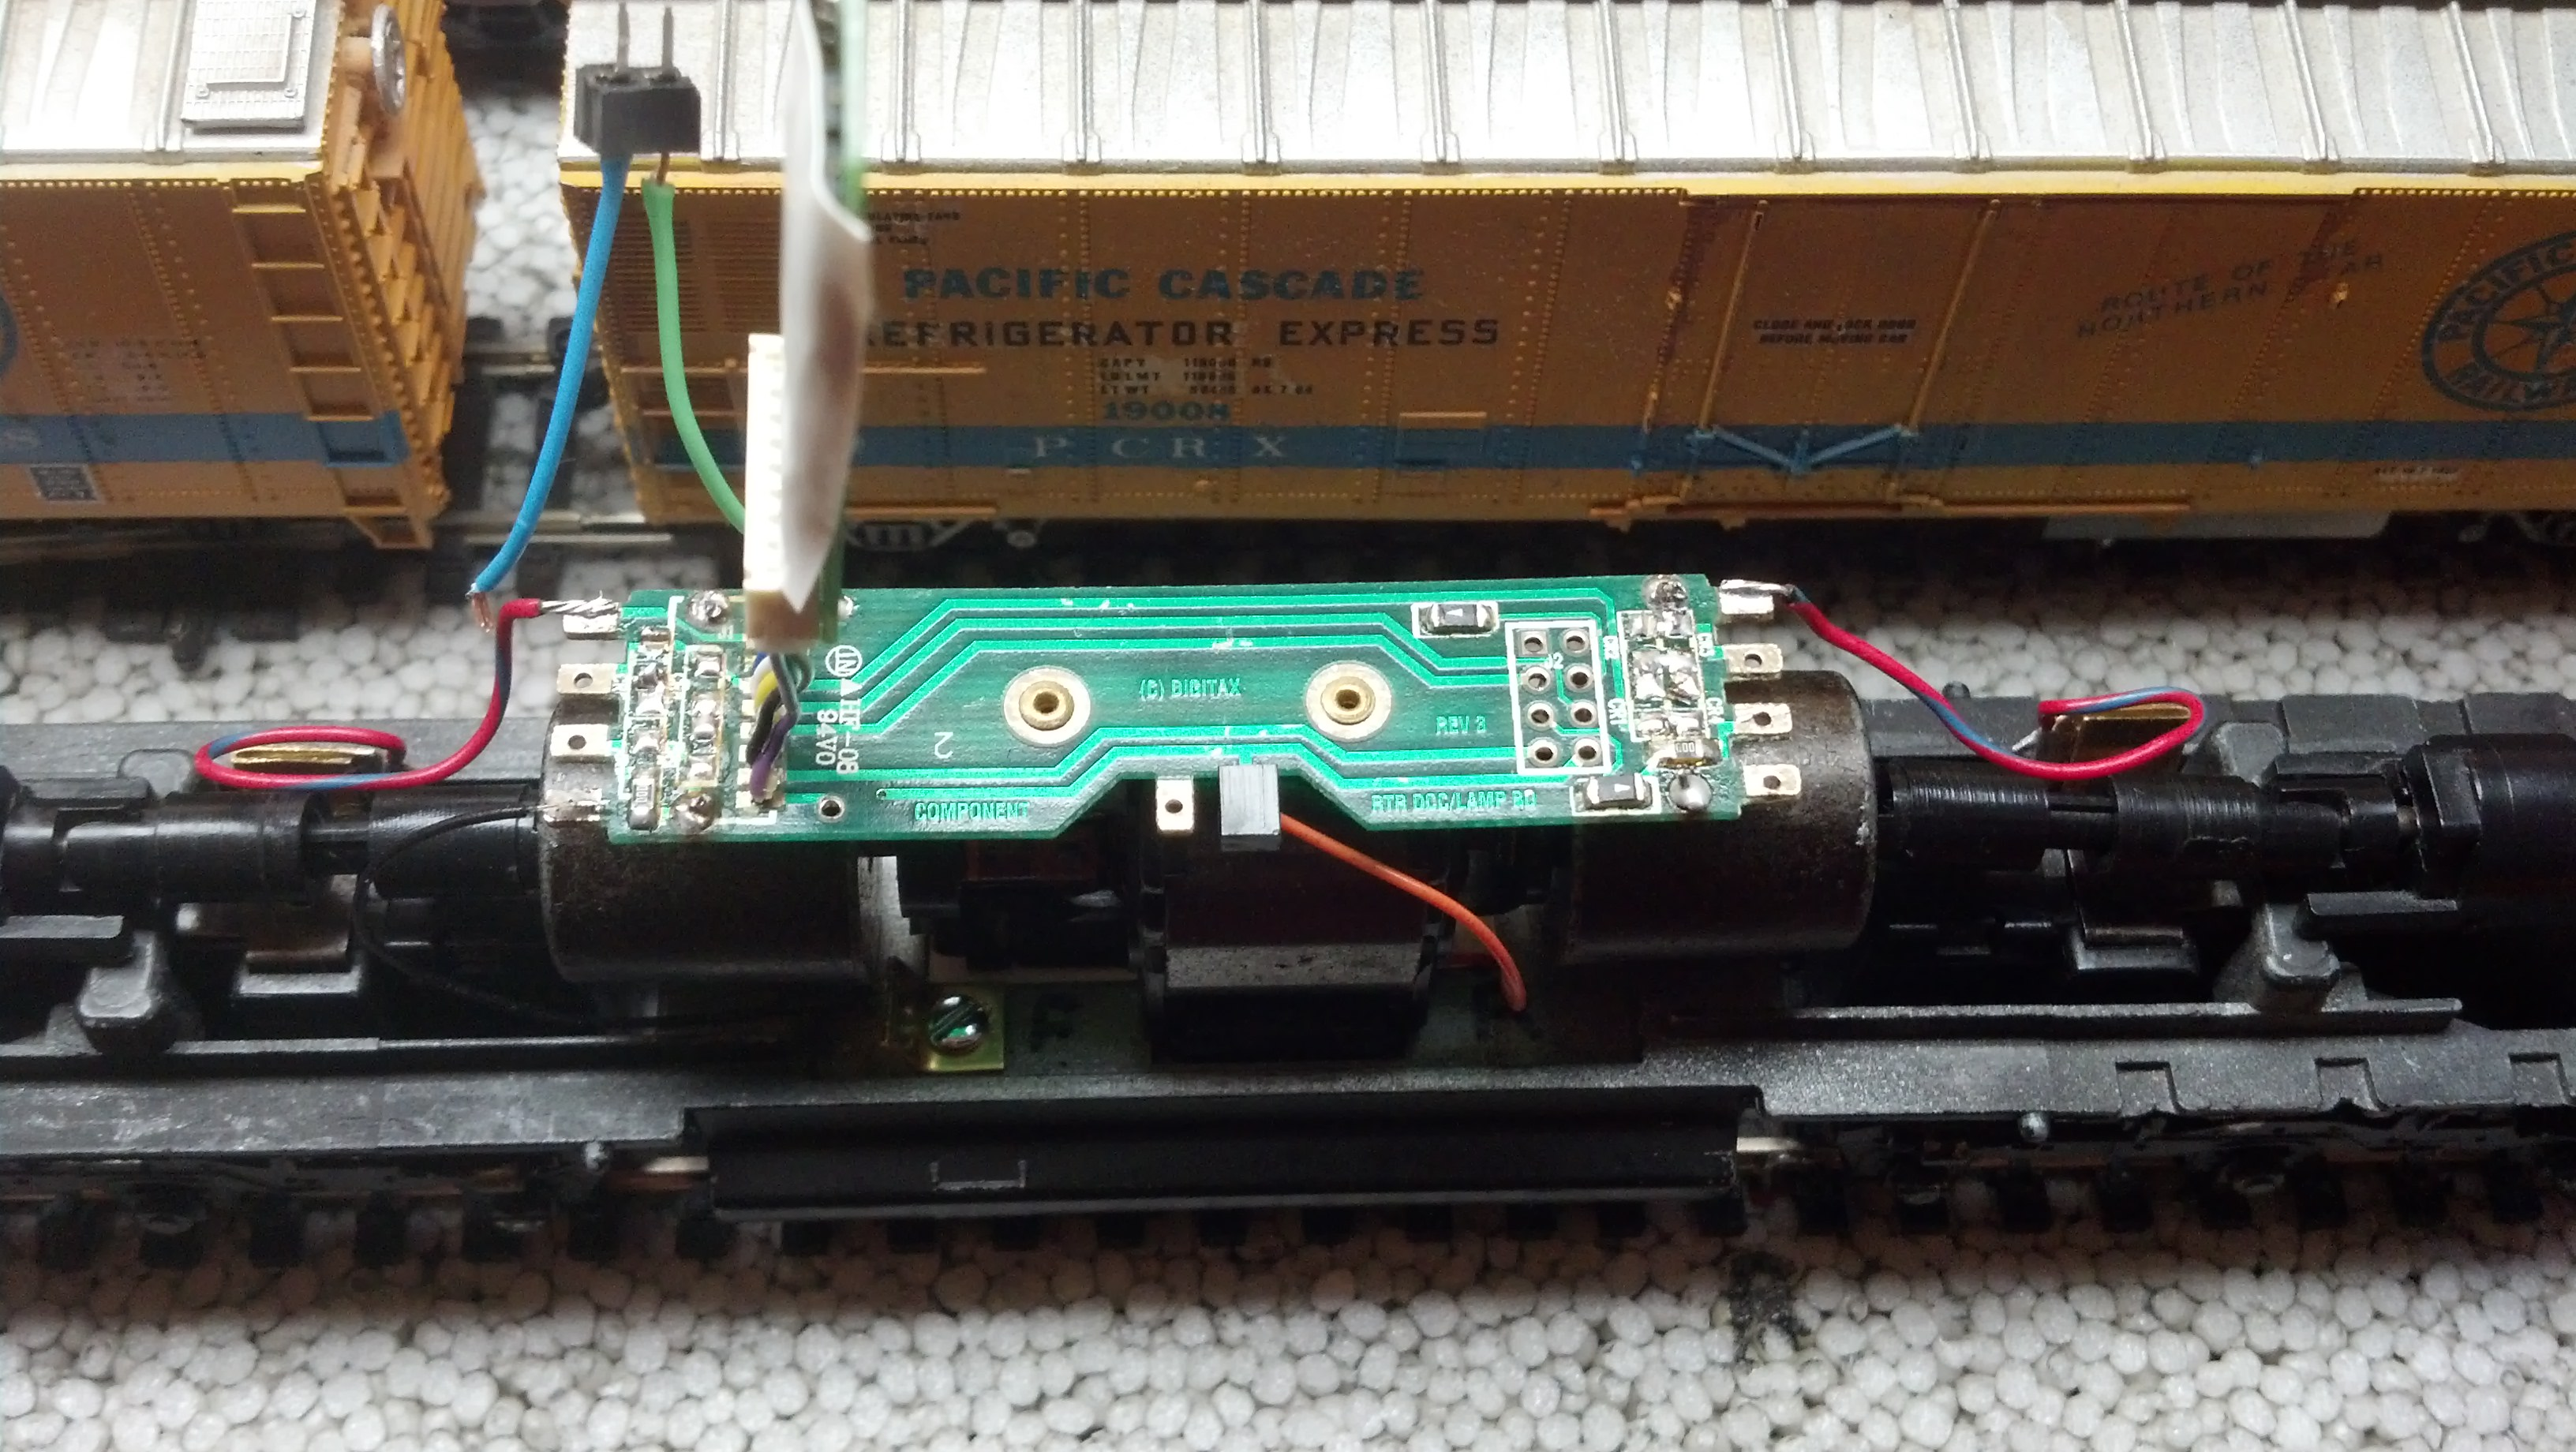 Converting The Athearn Digitrax Pc Board To Led Lighting Model Two Circuits Railroader Magazine Railroading Dcc Conversion